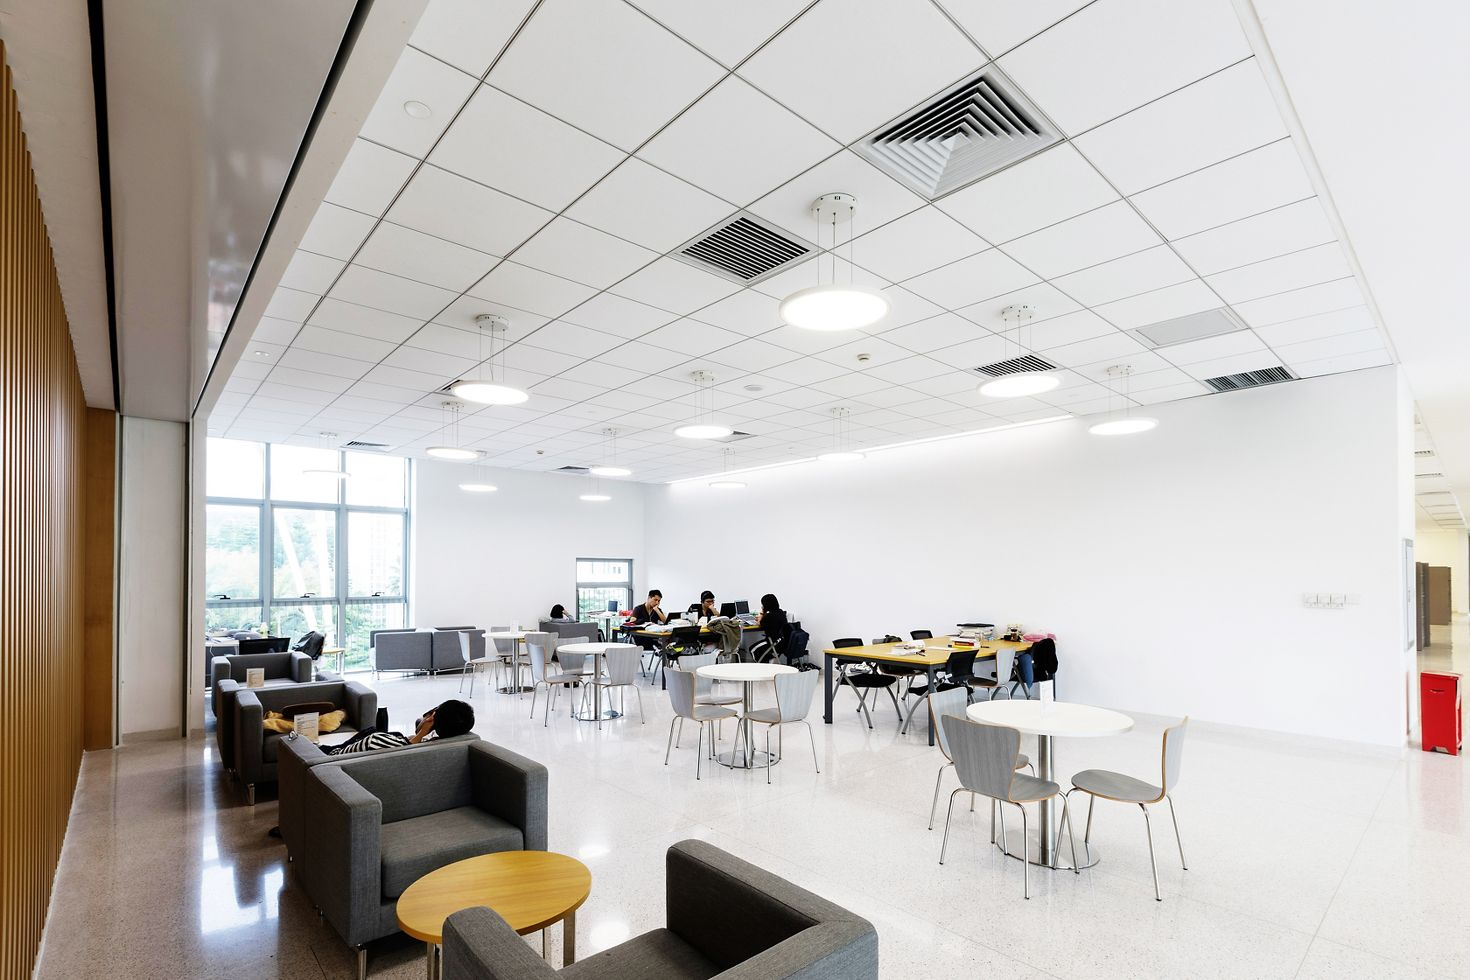 Suspended Ceilings and Roofing